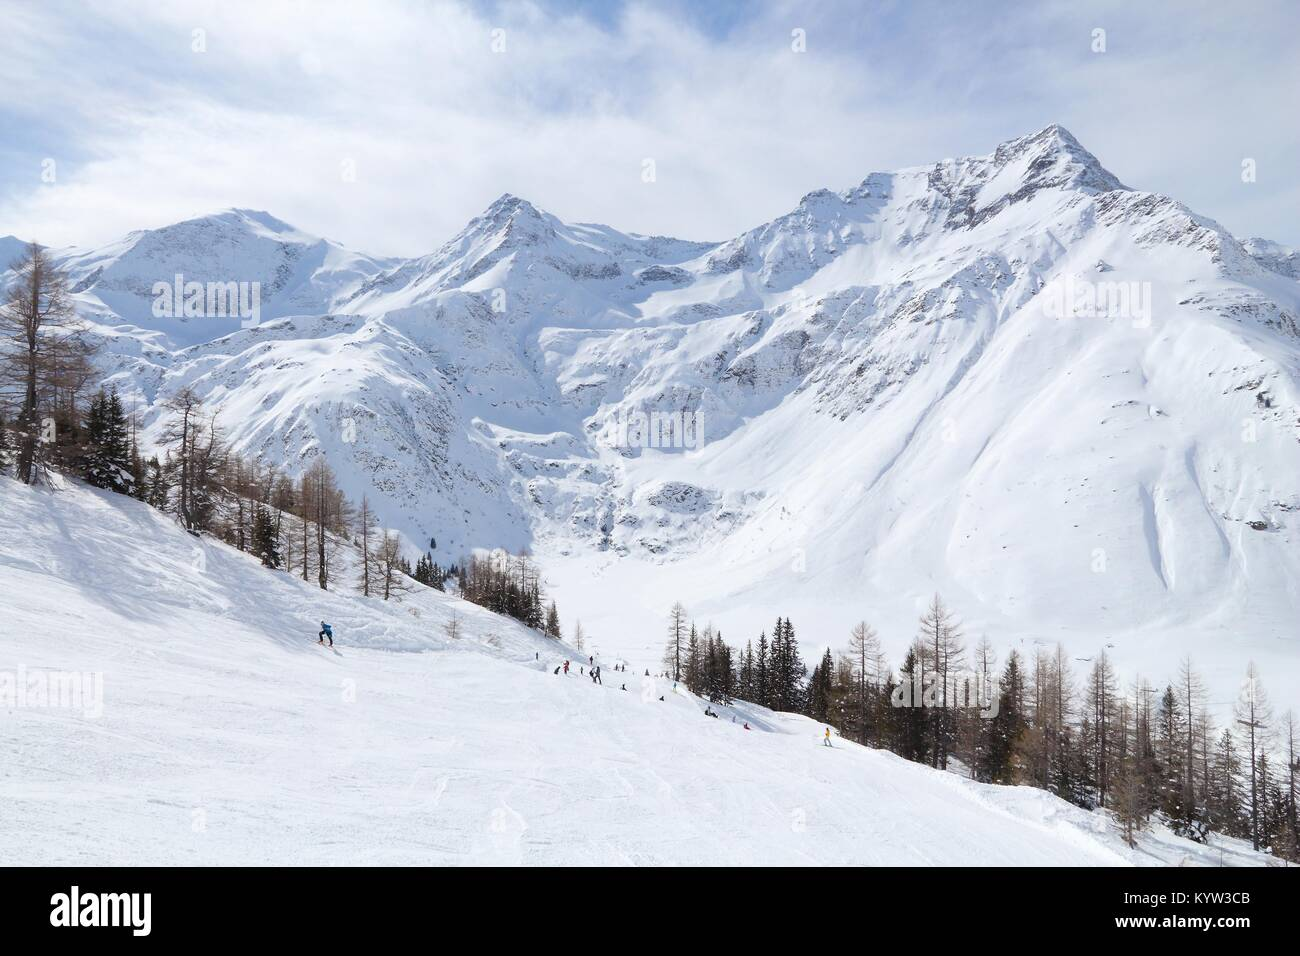 sportgastein ski resort in austria. snow in alps - hohe tauern range